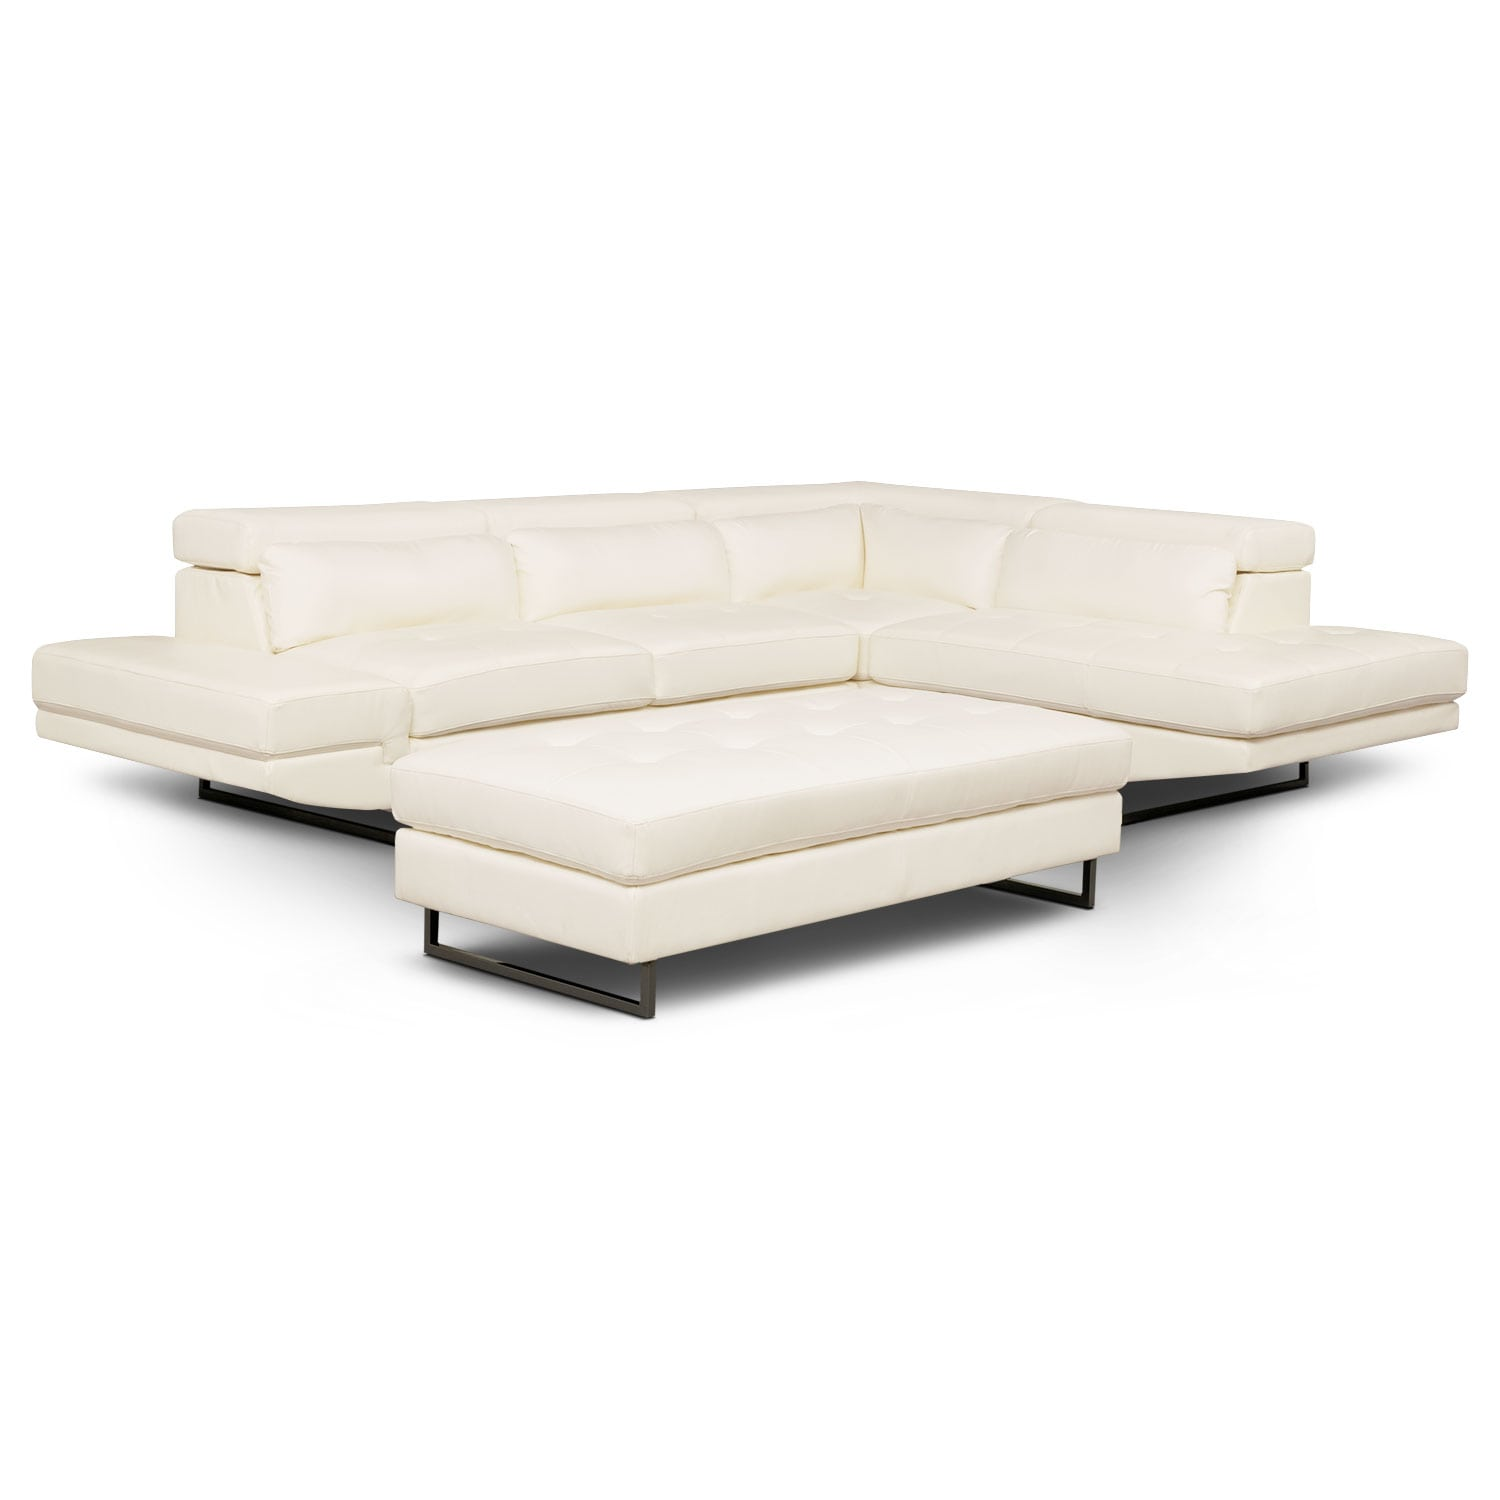 Living Room Furniture - Torino 2-Piece Sectional with Right-Facing Chaise and Cocktail Ottoman - White